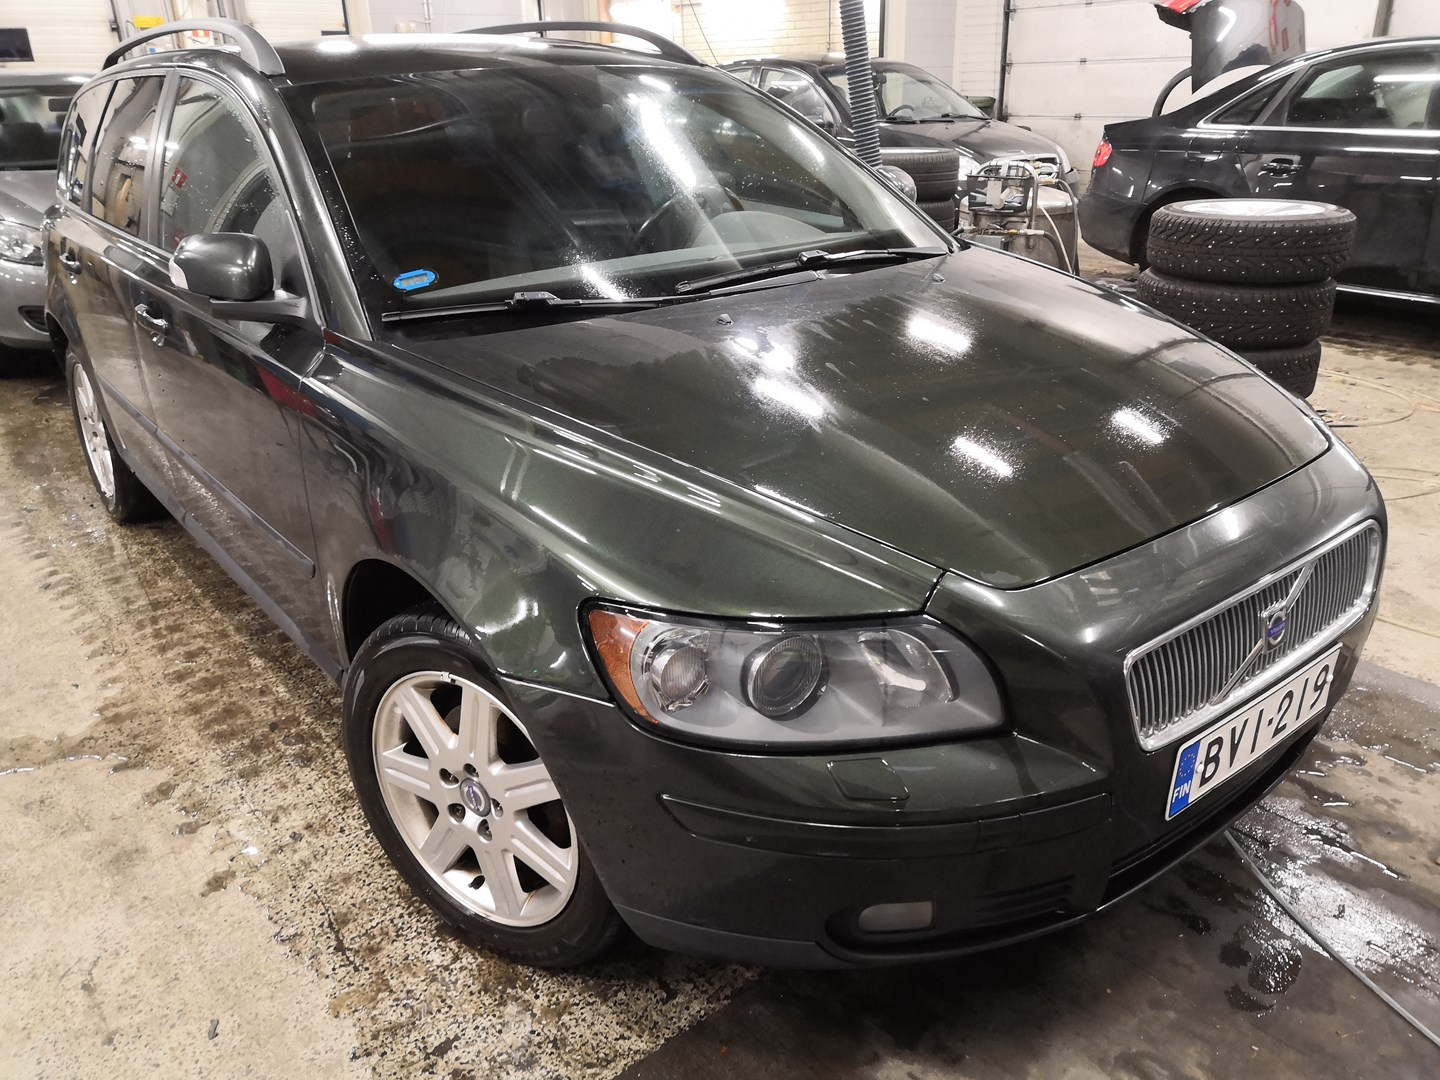 Volvo C30 For Sale >> 2007 Volvo V50 For Sale At Espoo On Tuesday December 10